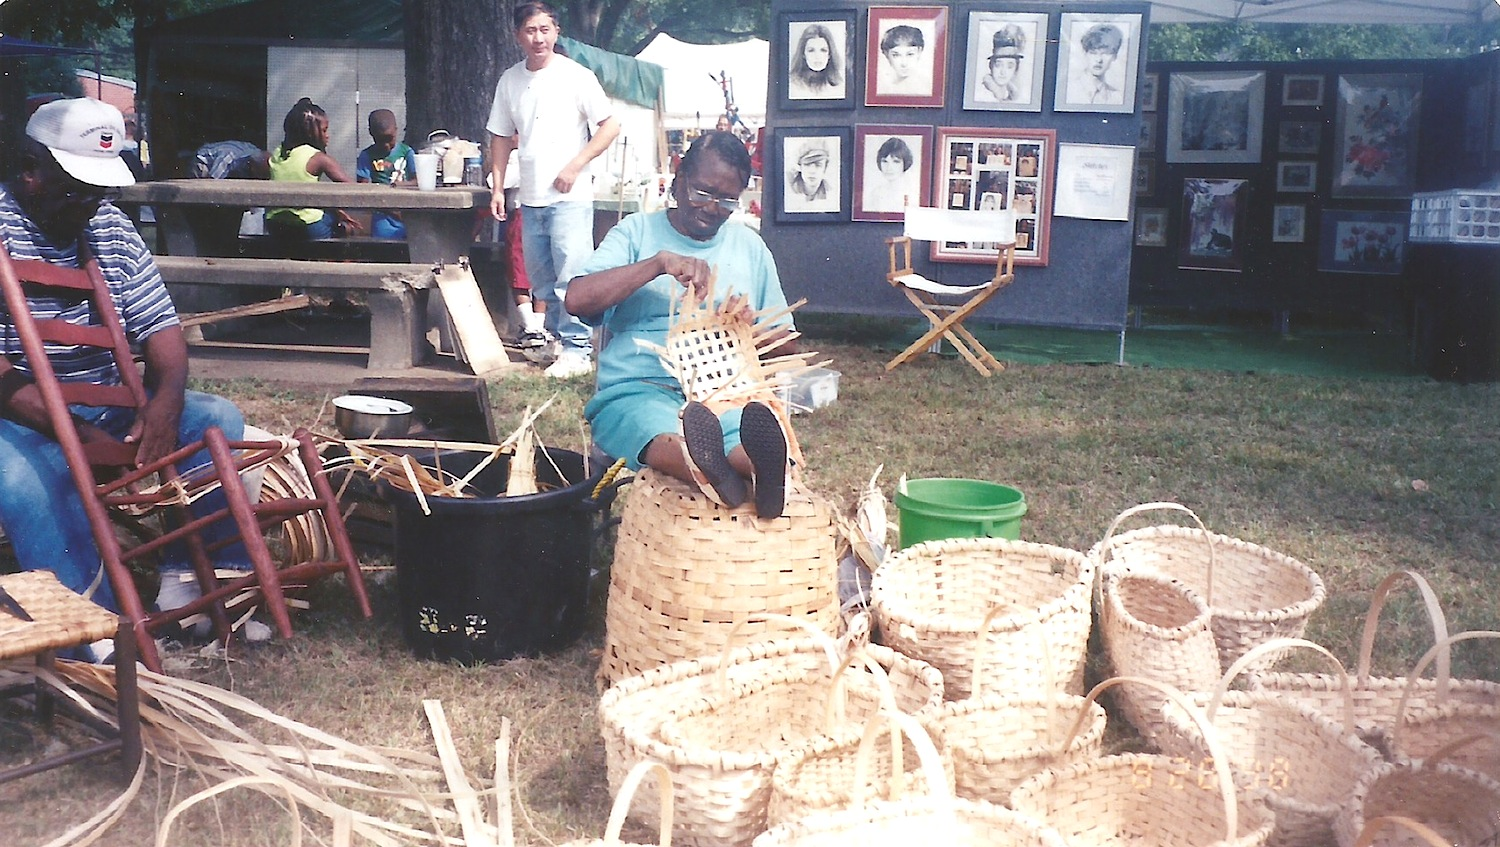 Estelle's parents, Sterling and Mary Ella giving a weaving demonstration in the early 1990s